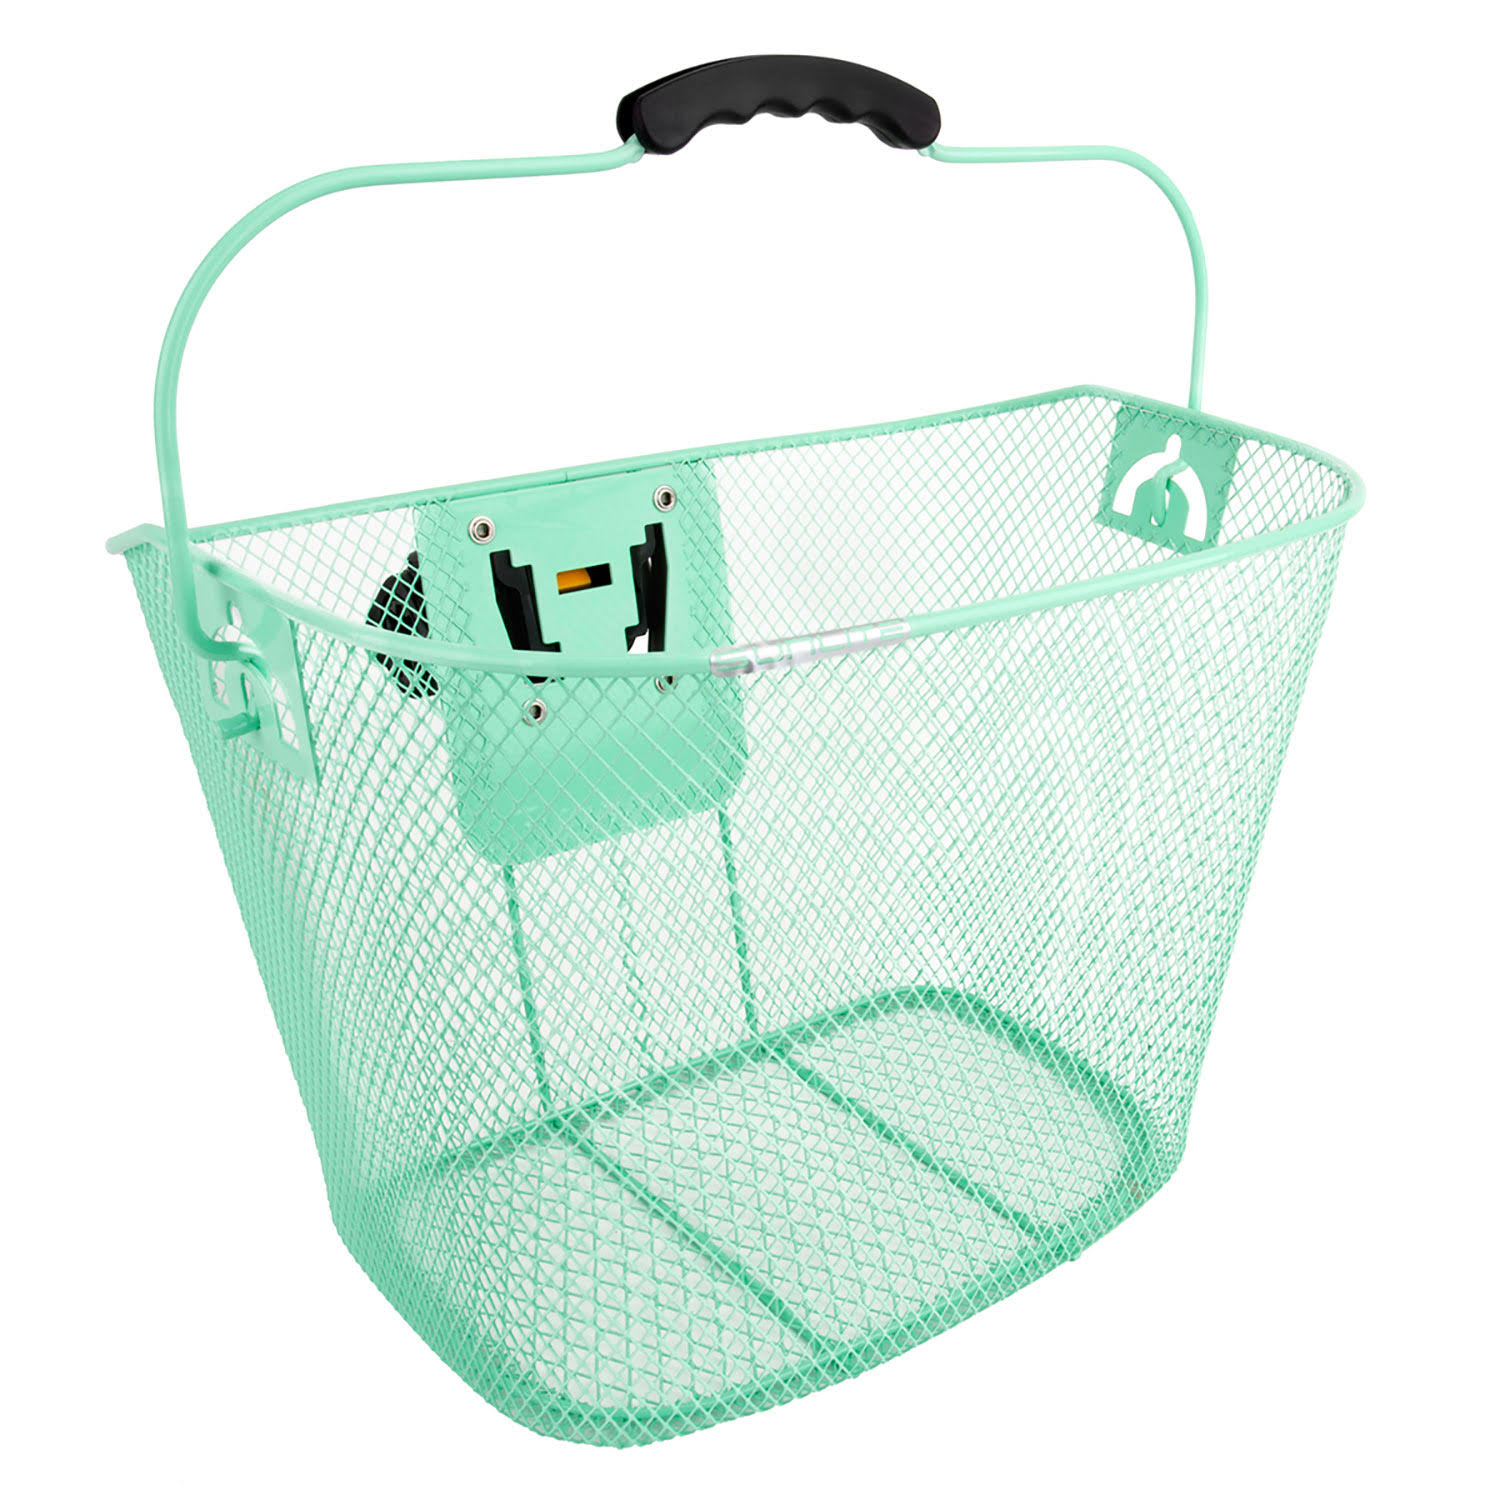 Sunlite Bicycle Basket Front Mesh with Quick Release Bracket - Green